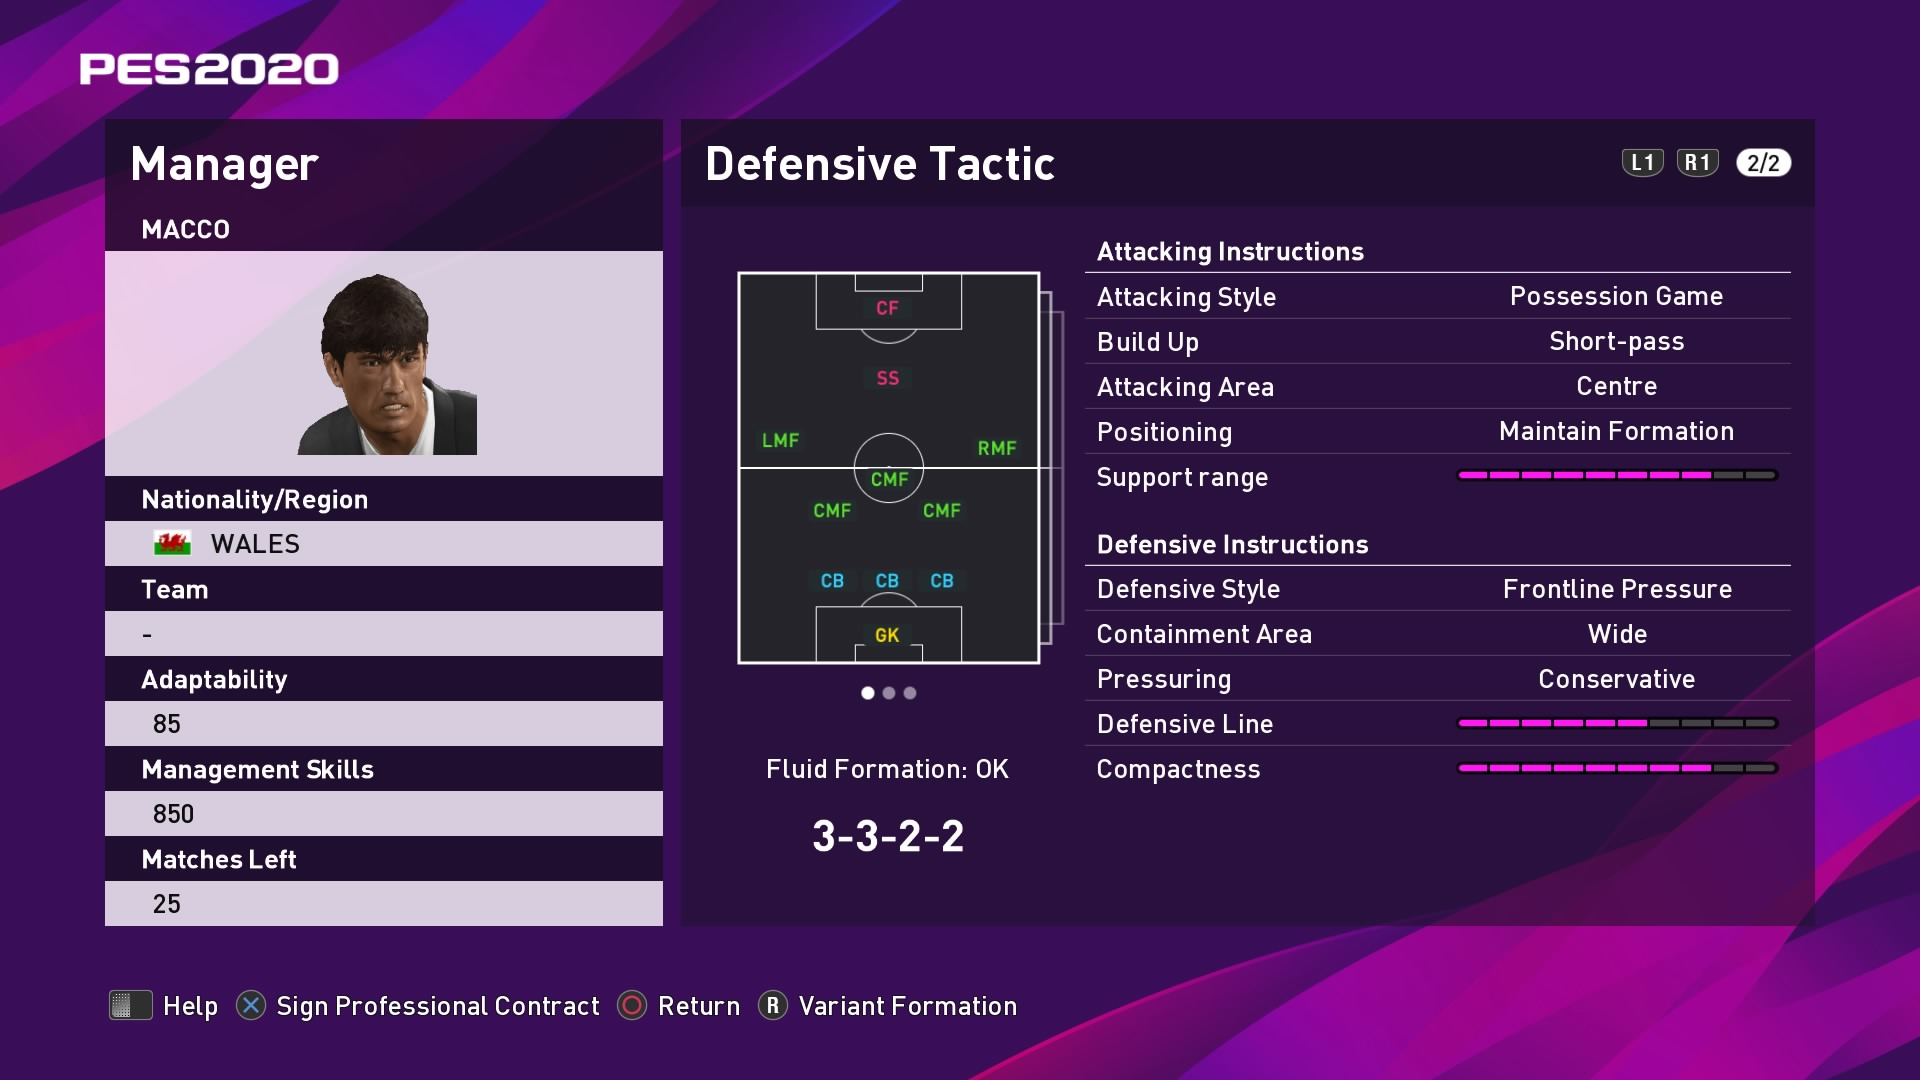 Macco Defensive Tactic at Kick-off